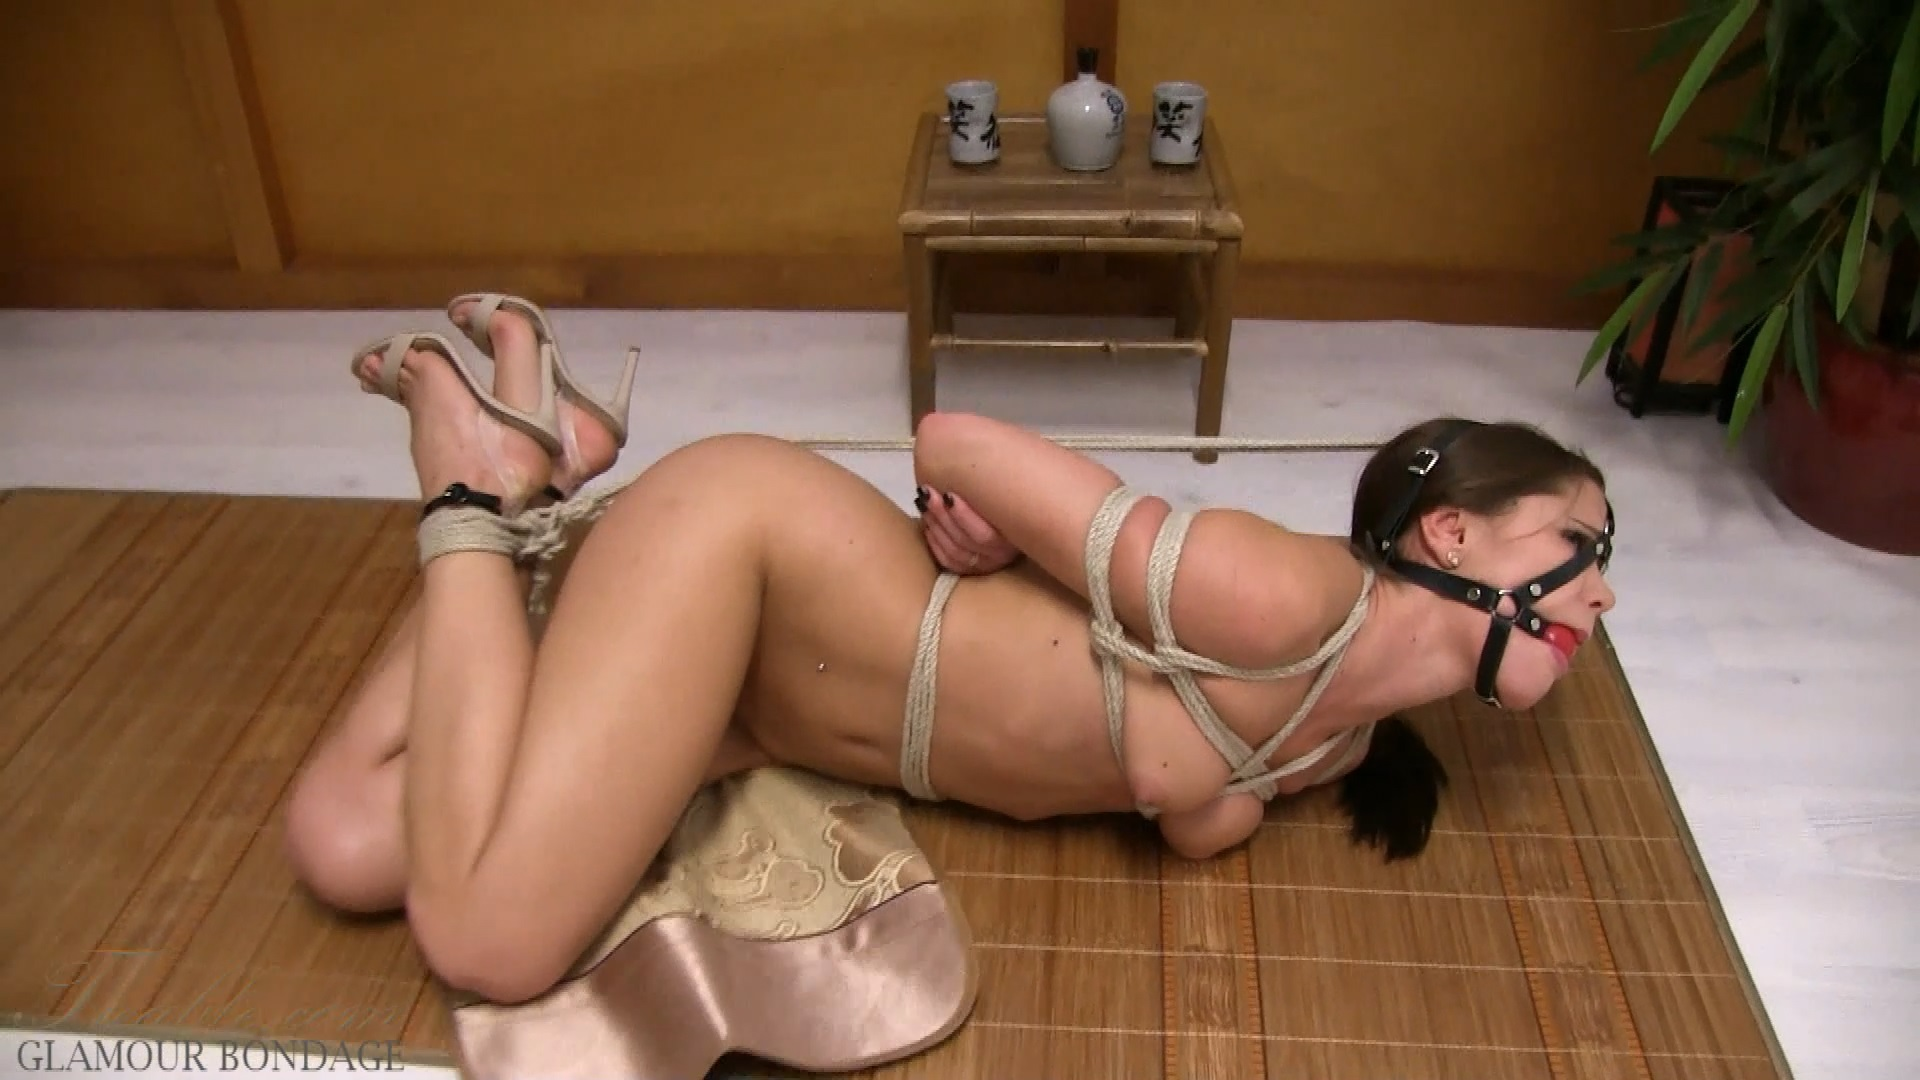 Little Caprice harness gag hogtie